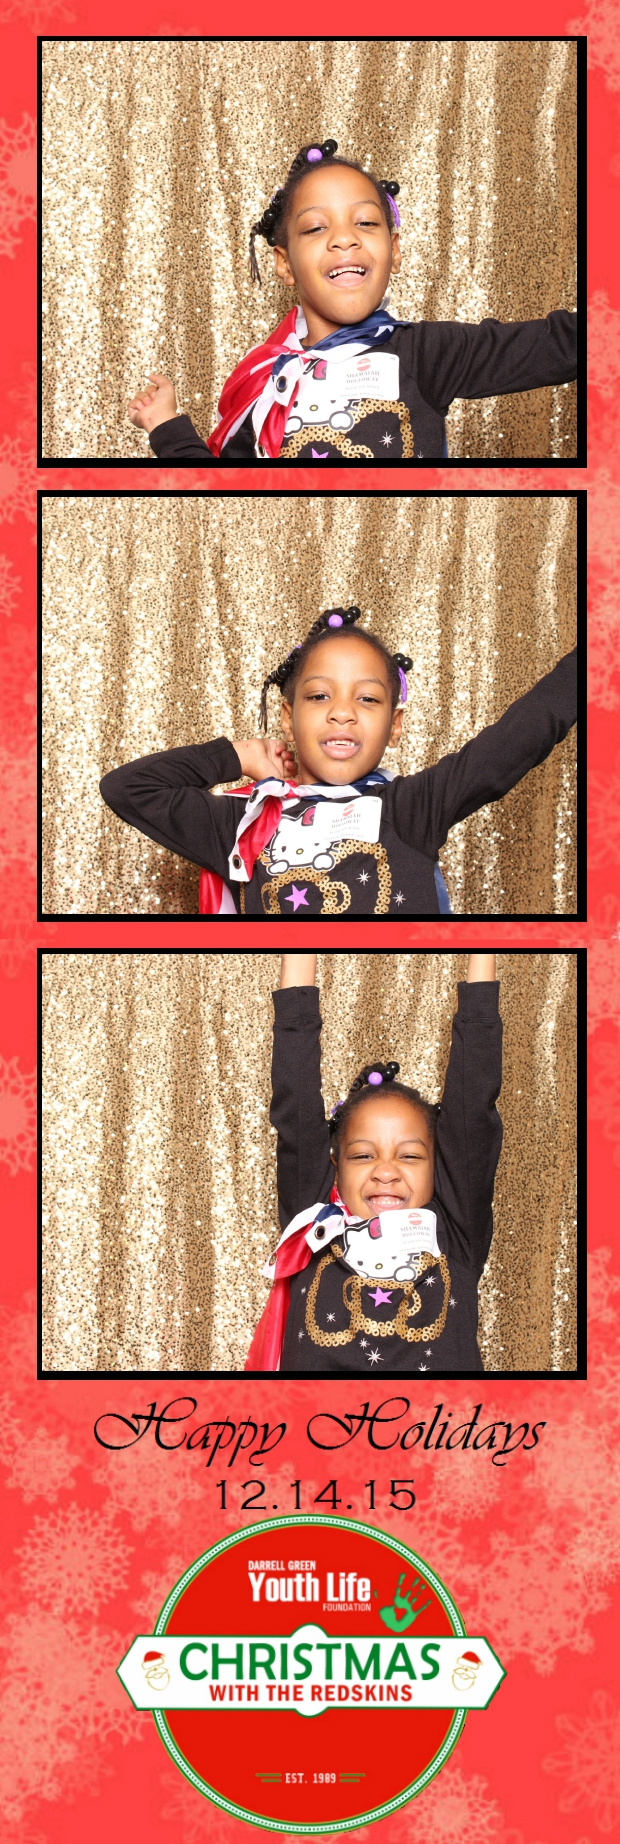 Guest House Events Photo Booth DGYLF Strips (30).jpg